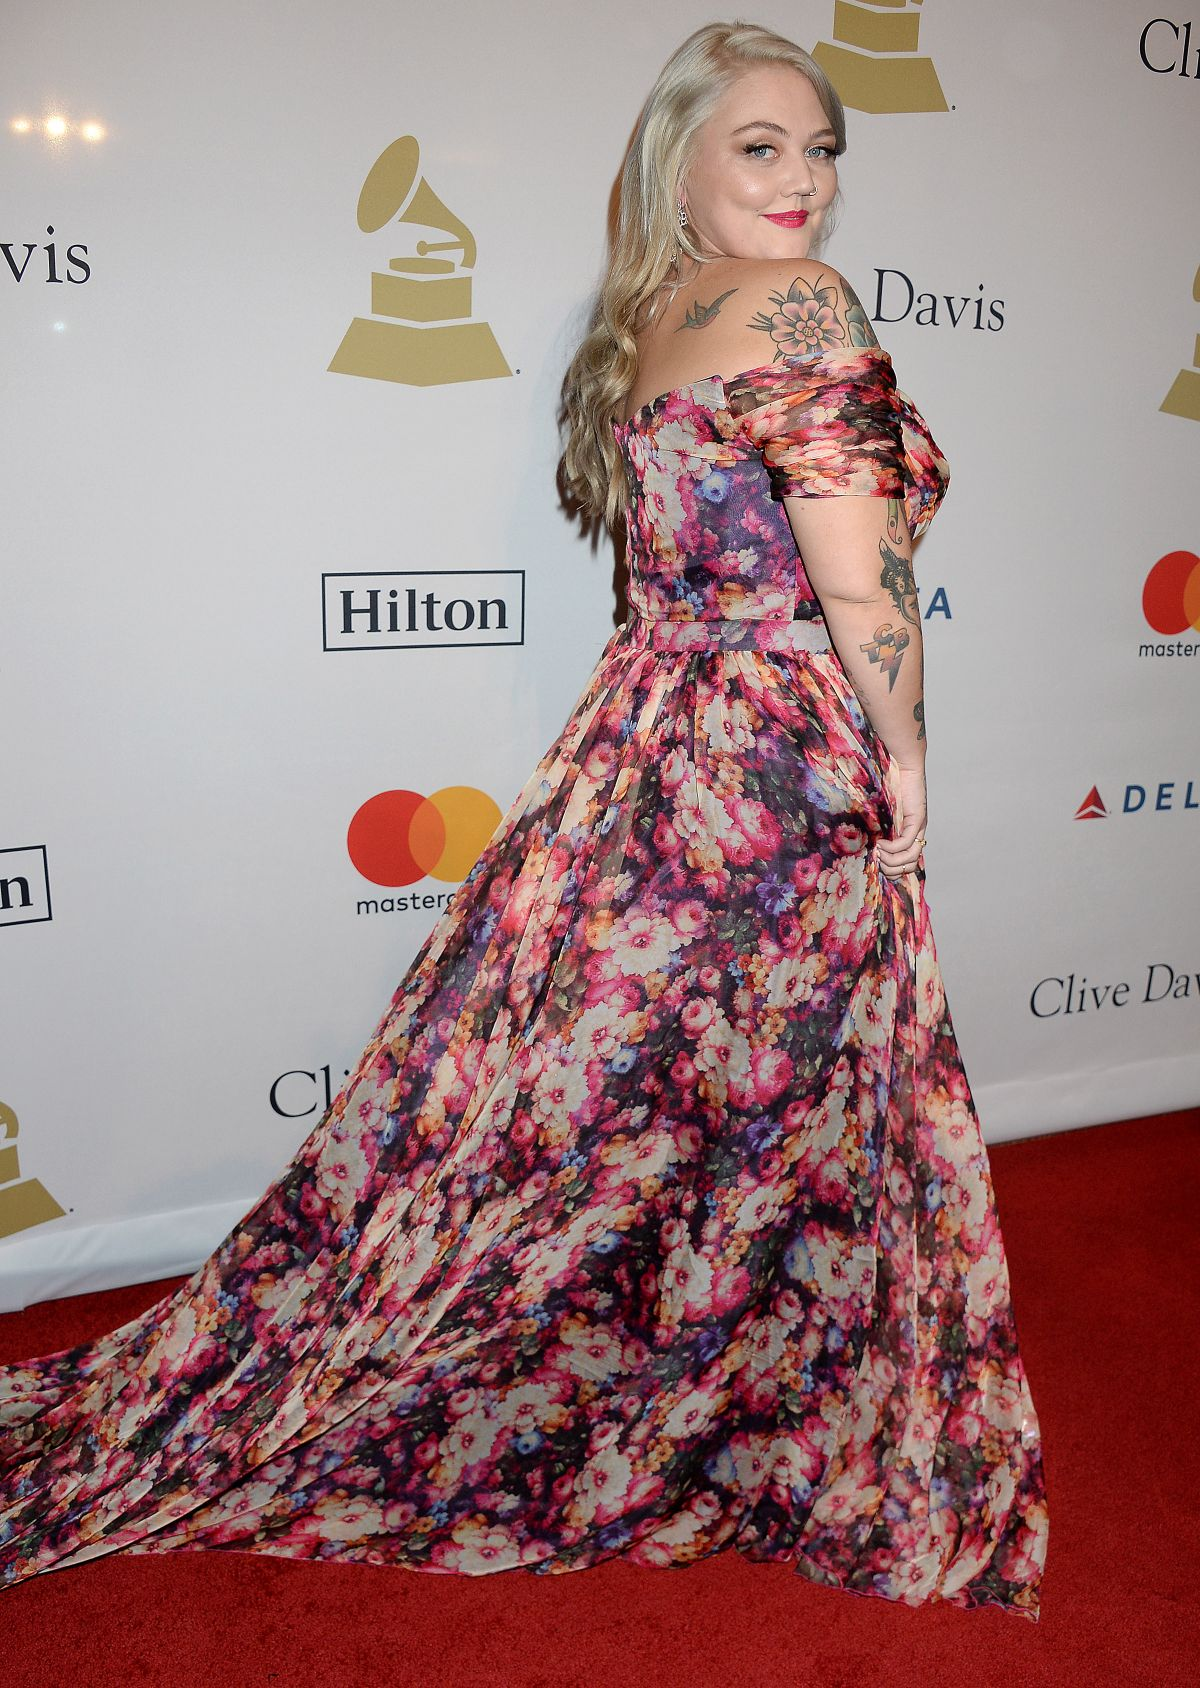 ELLE KING at Clive Davis Pre-grammy Party in Los Angeles 02/11/2017